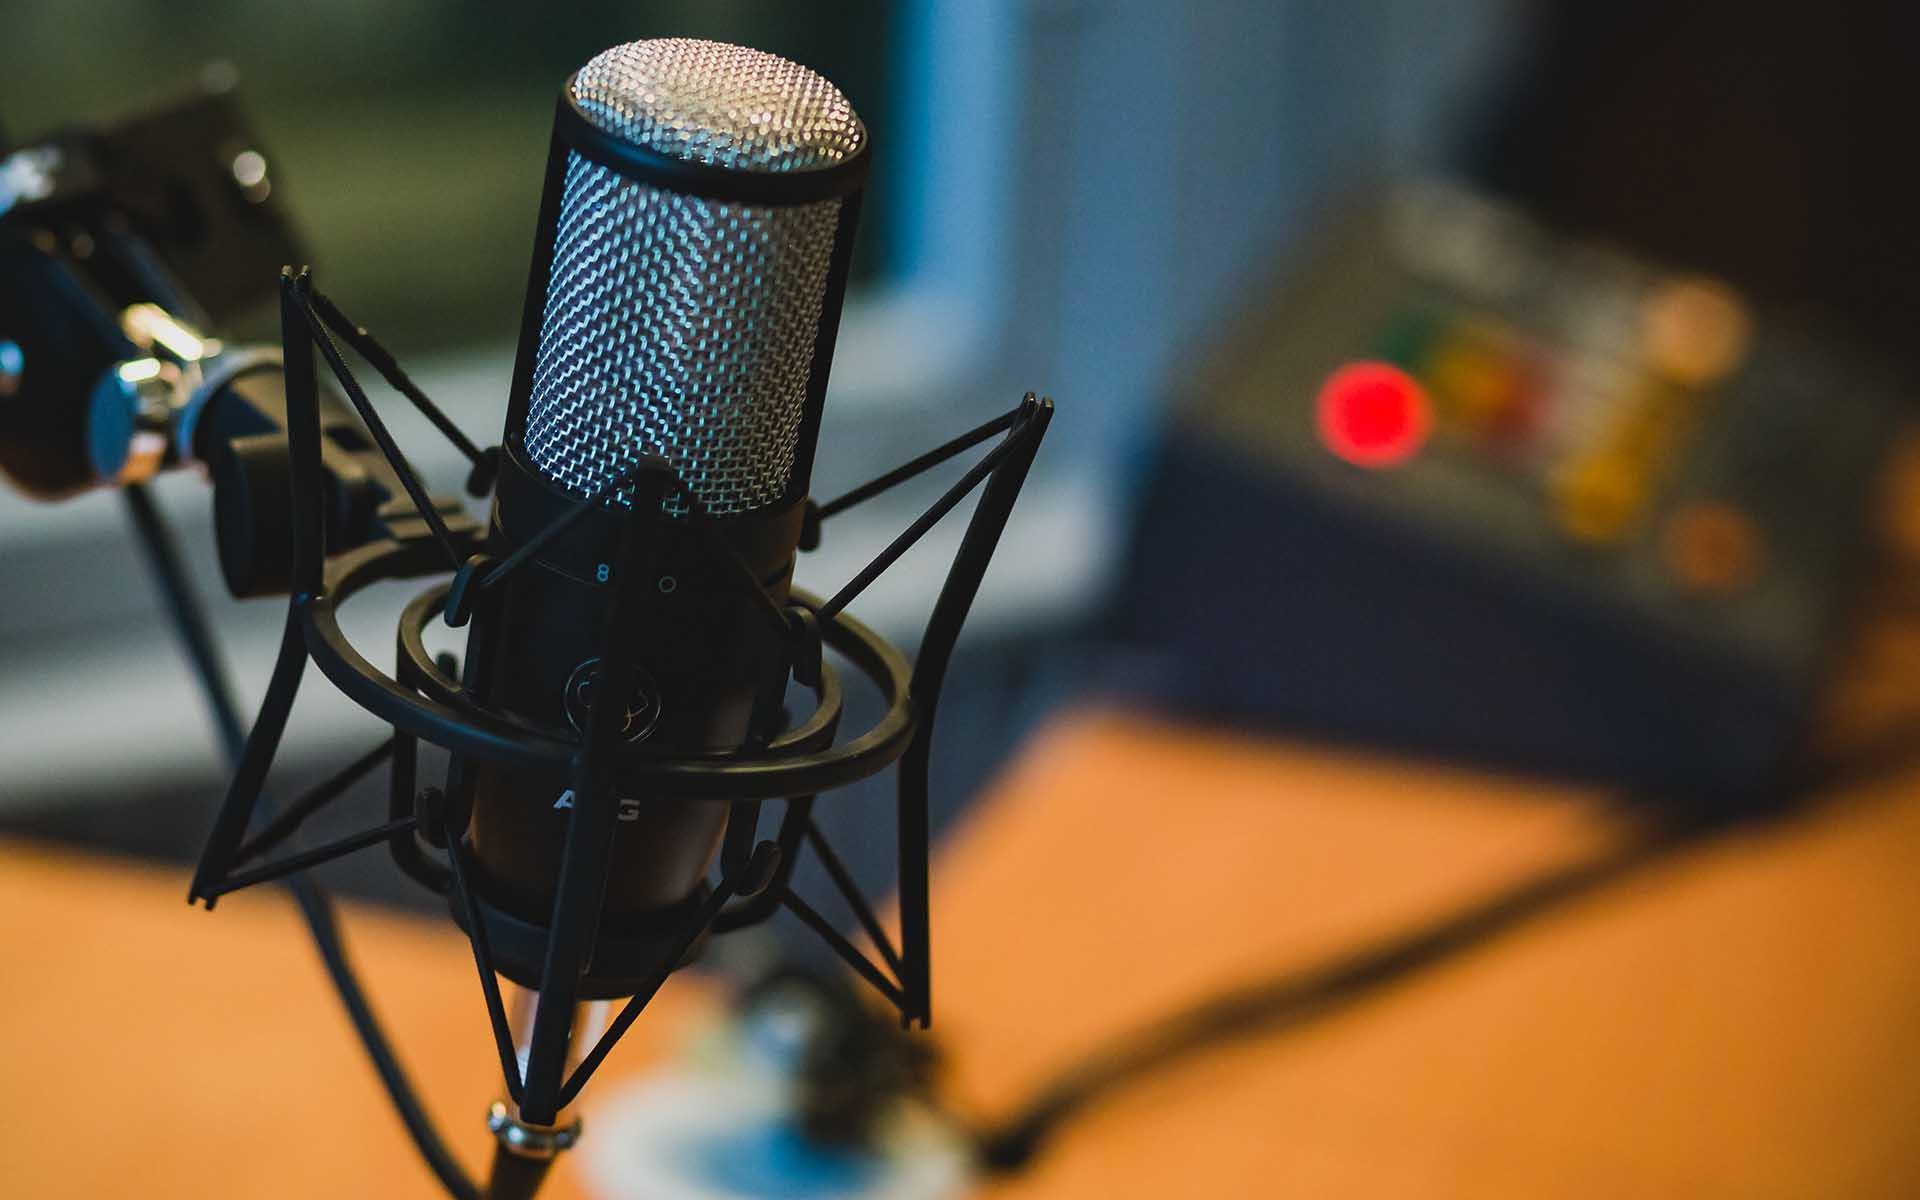 Top 7 Cryptocurrency Podcasts That You Can't Afford to Miss